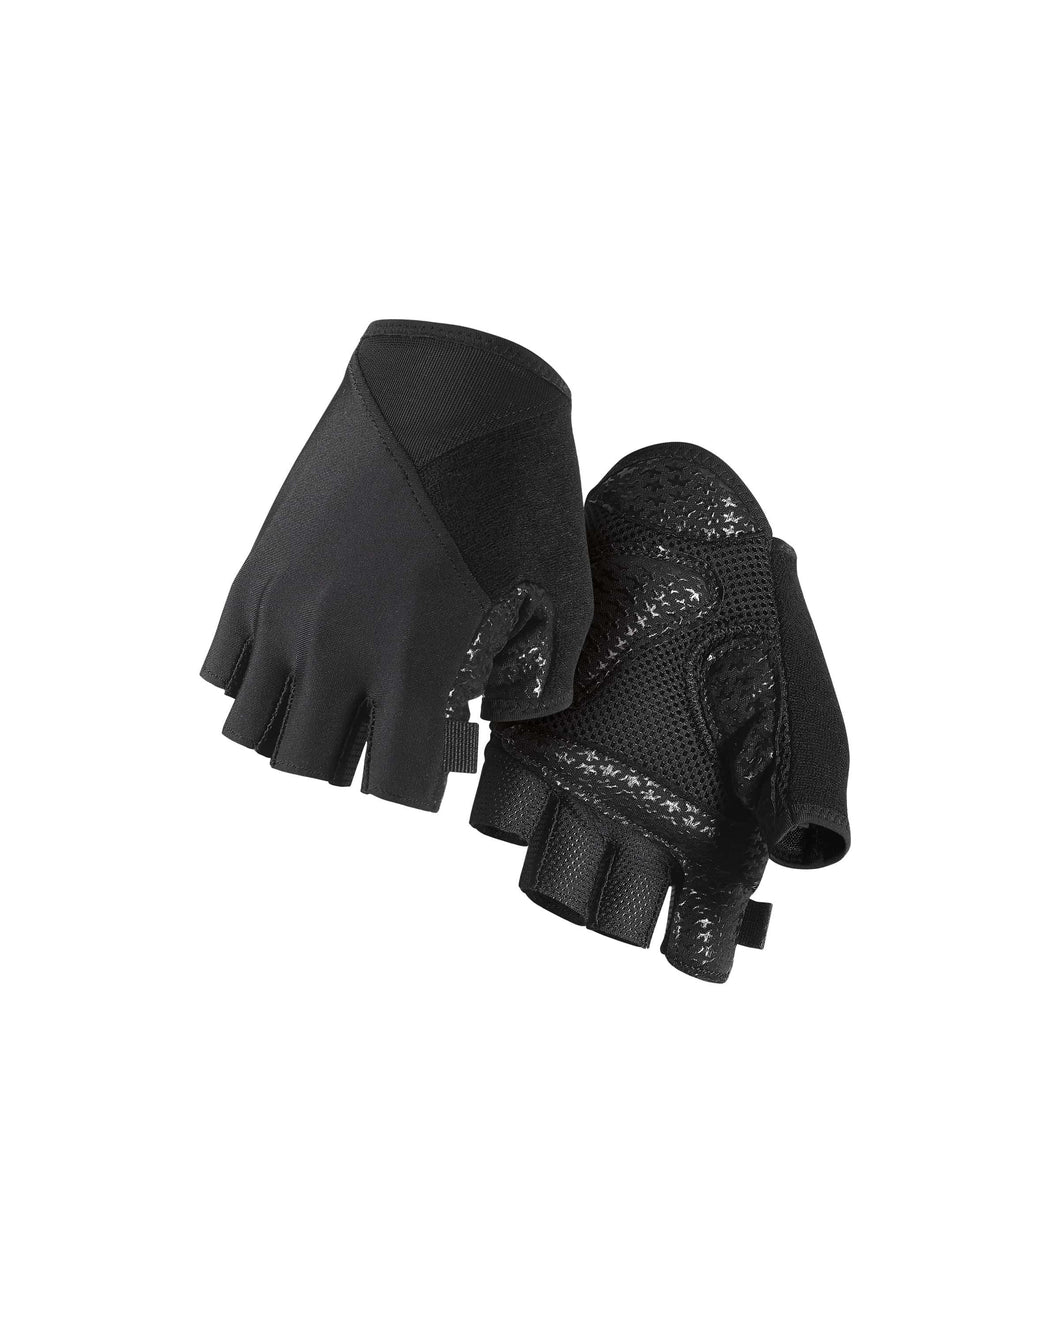 Assos Summer S7 Gloves, 2020 - Cycle Closet